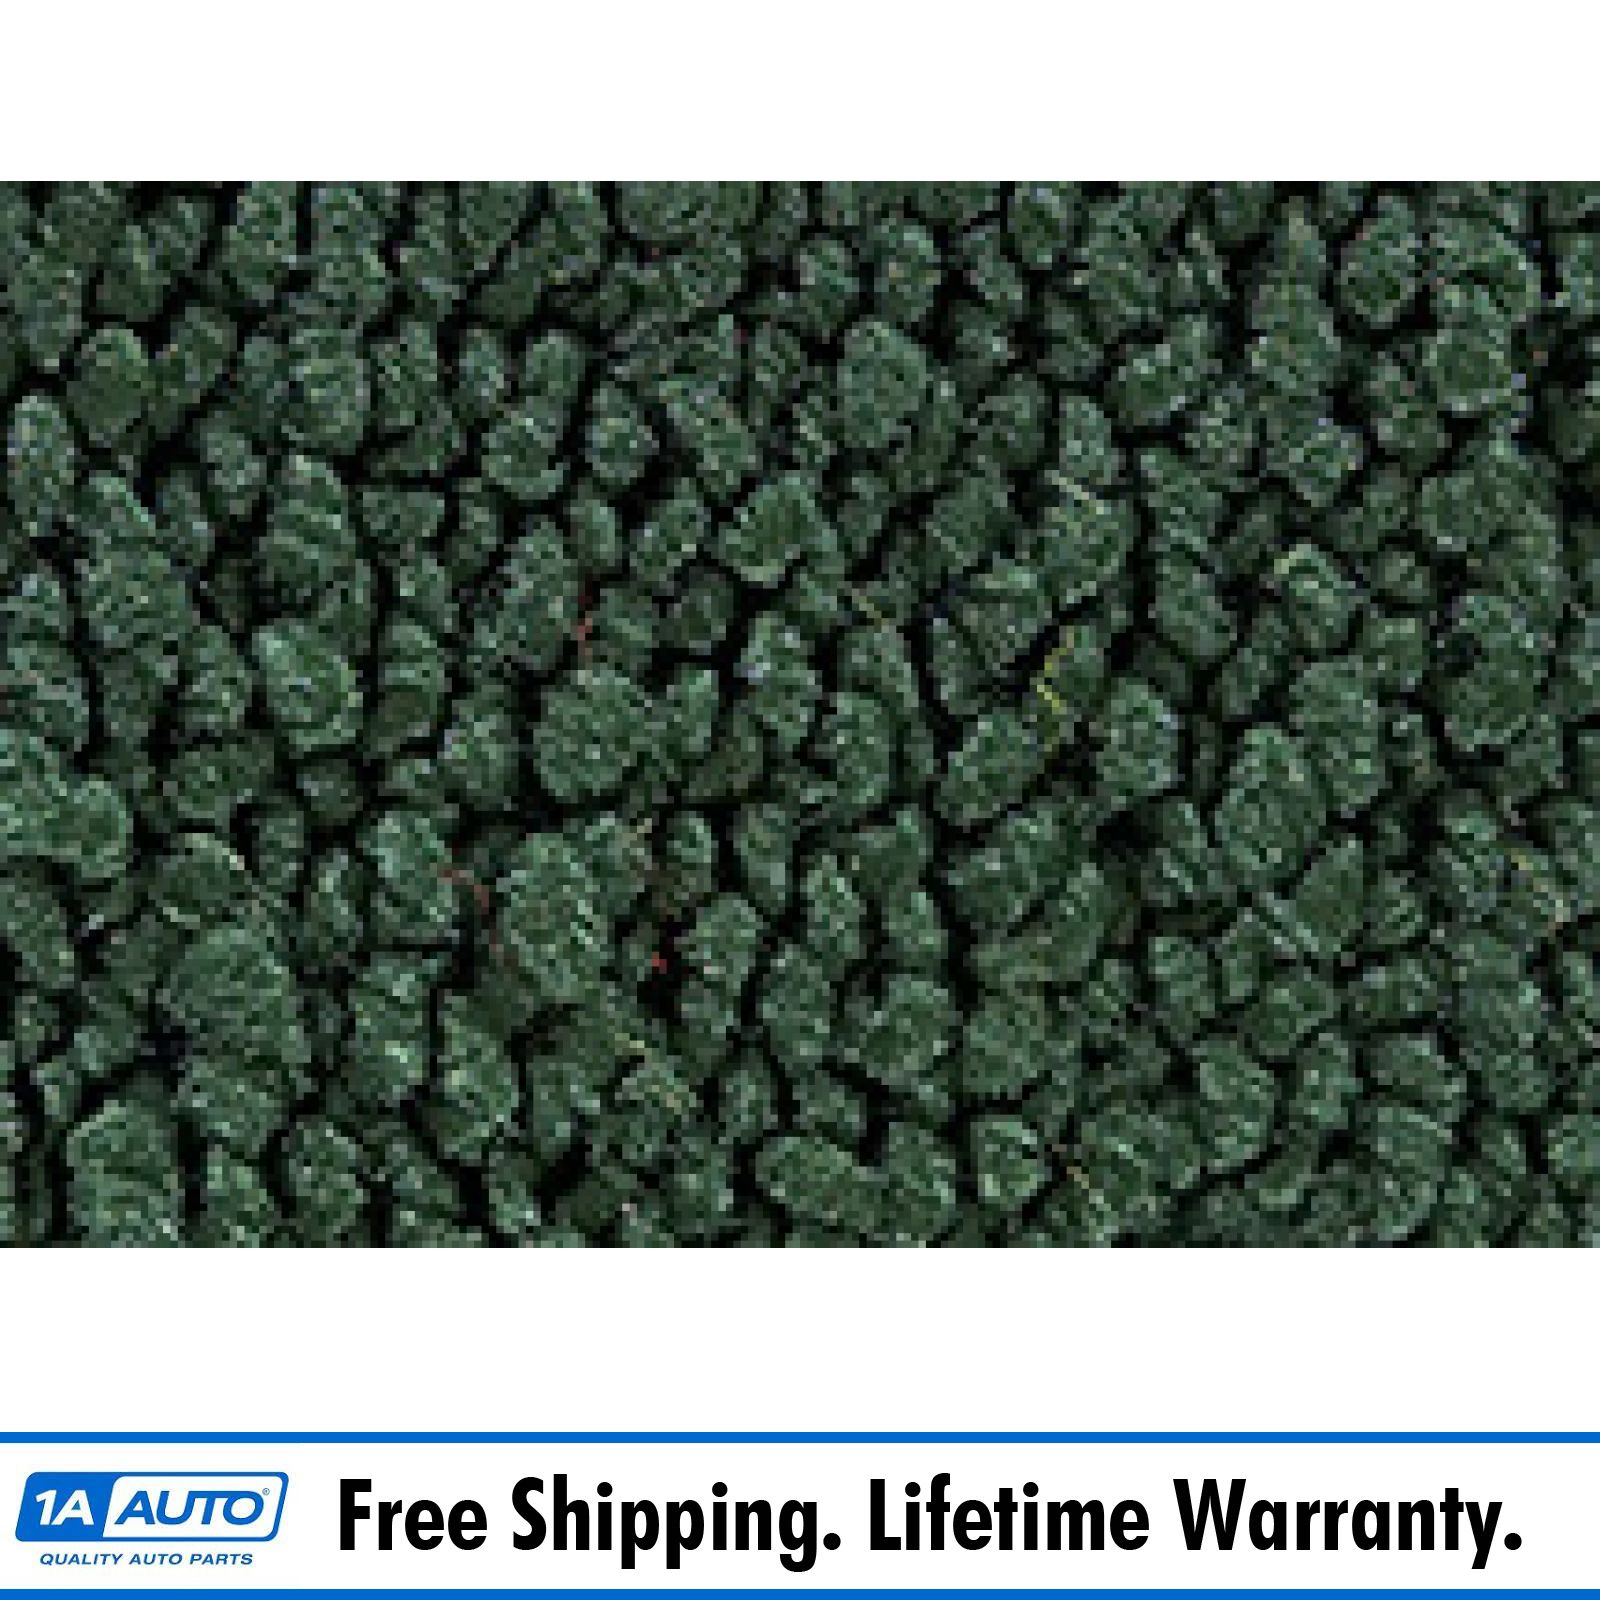 Standard Cab 4 WD Auto Carpet For 65-72 Ford Pickup Truck With Gas Tank In Cab